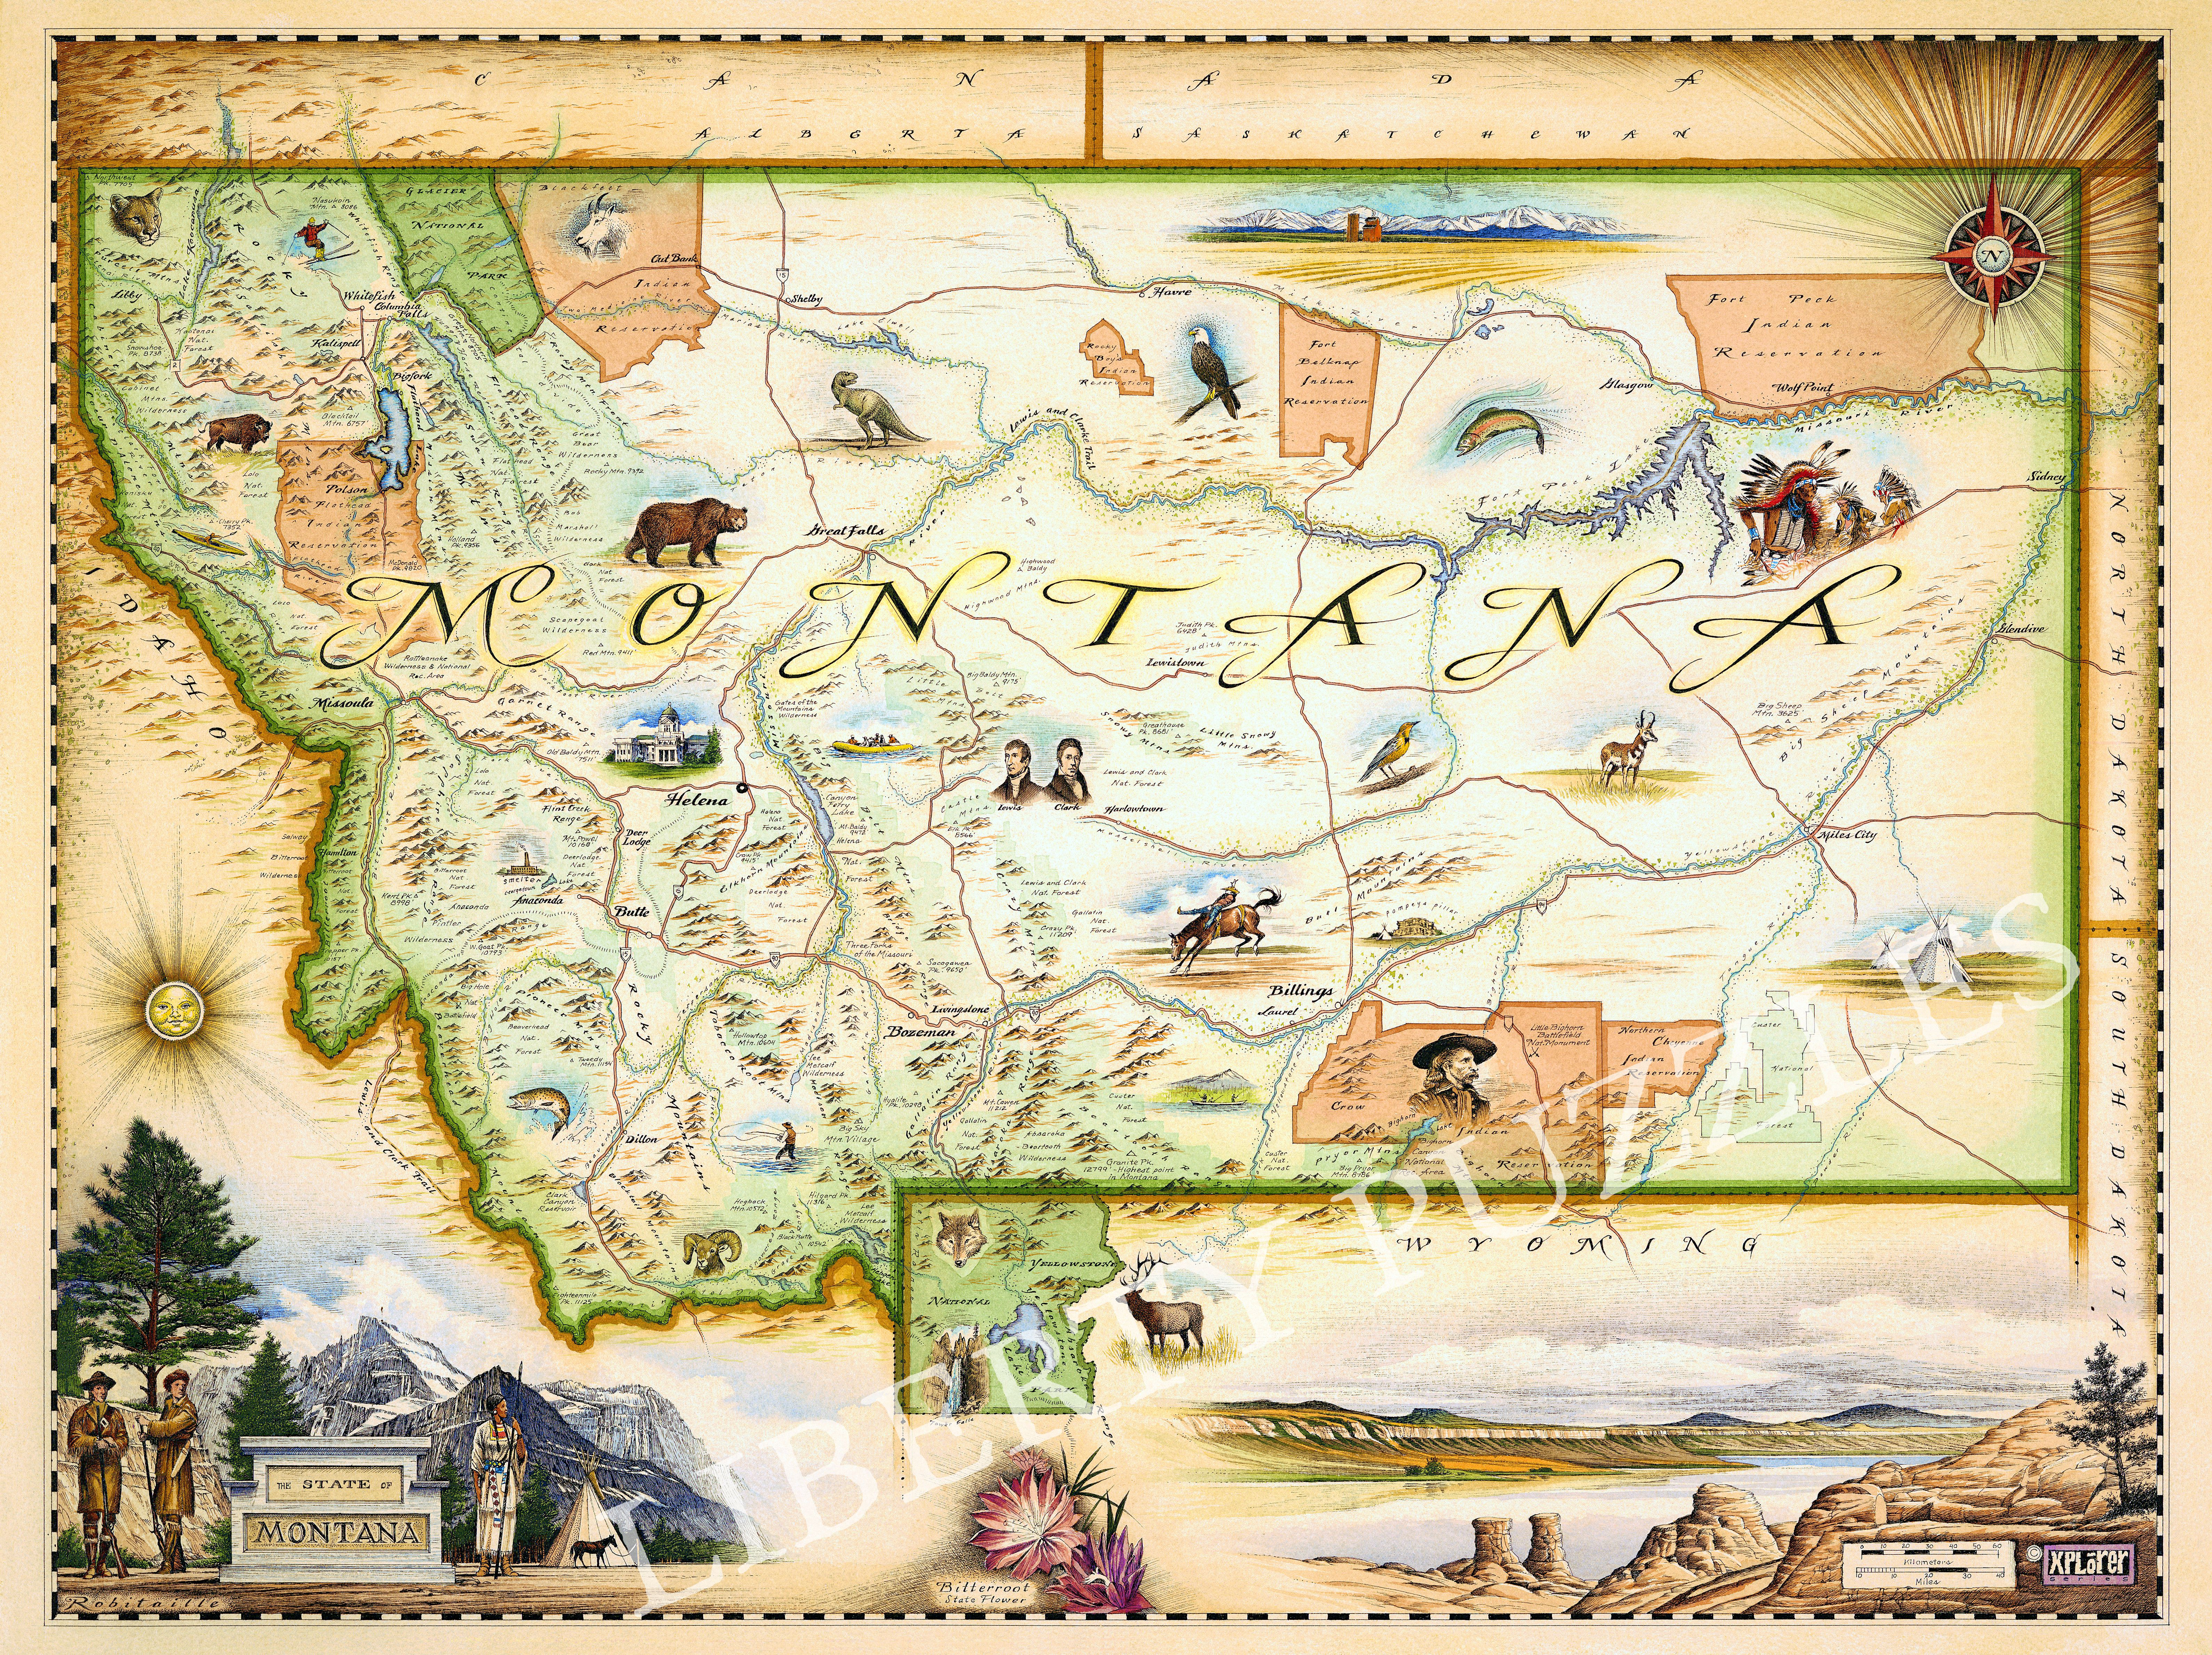 Montana Map - Wooden Jigsaw Puzzle - Liberty Puzzles - Made in the USA